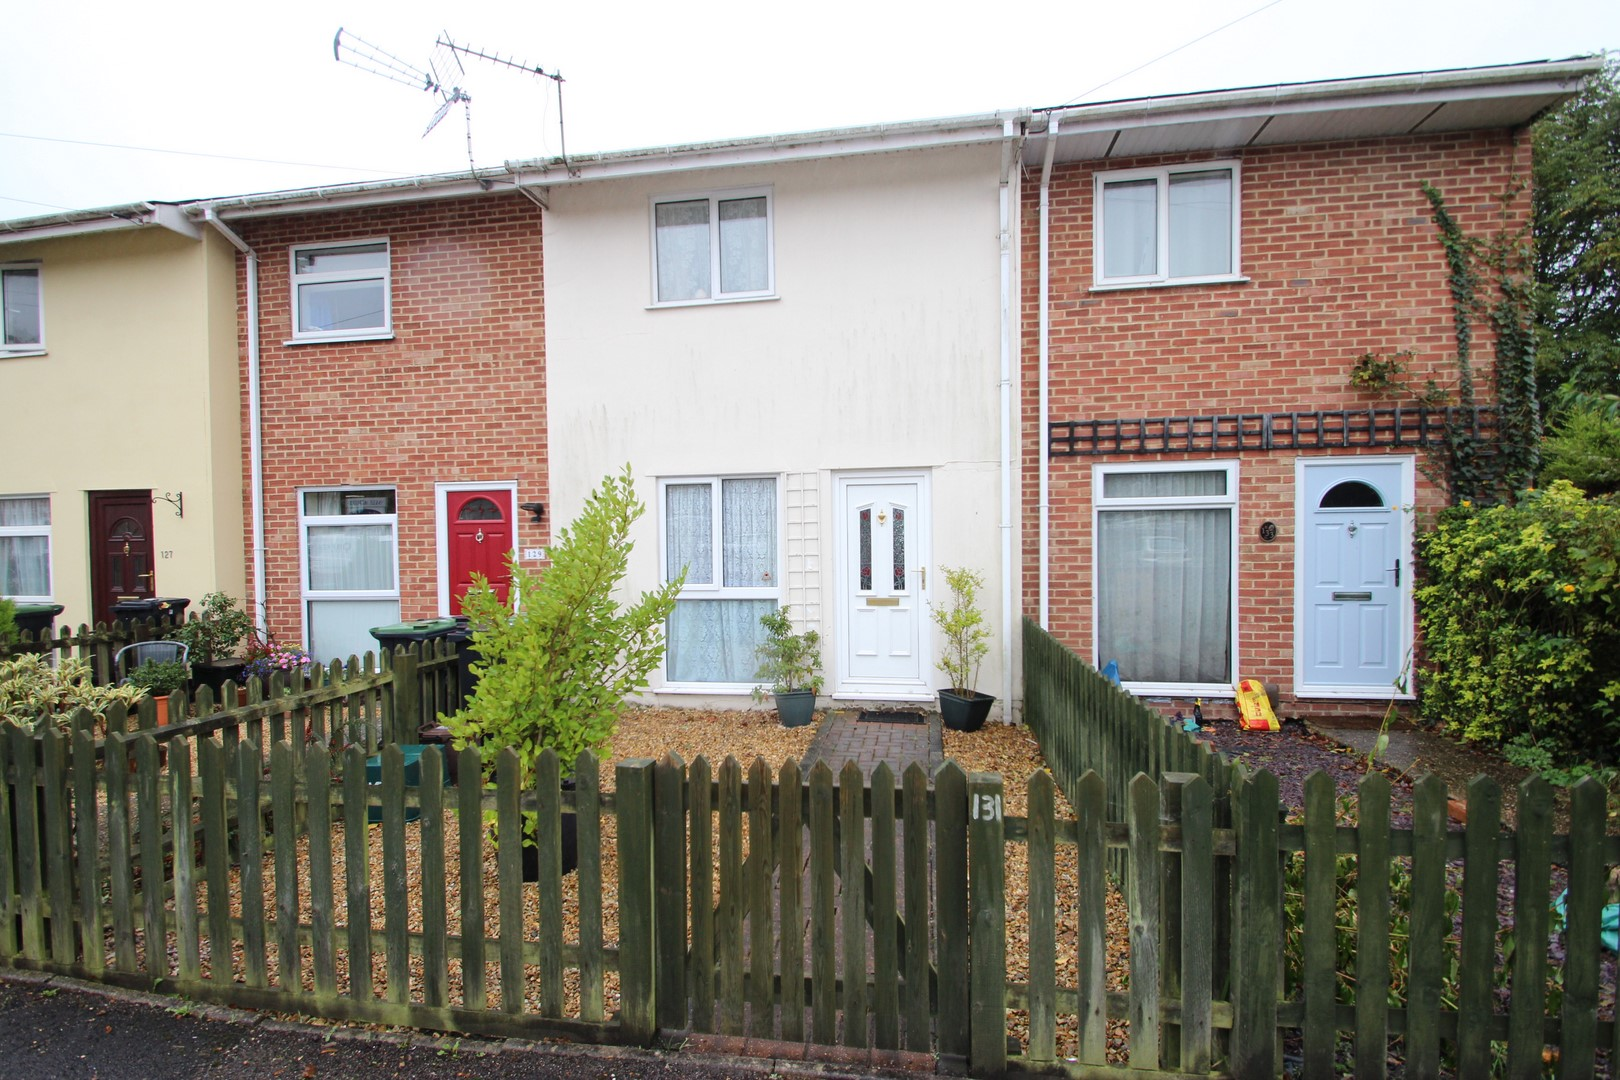 2 Bedroom House in Burton